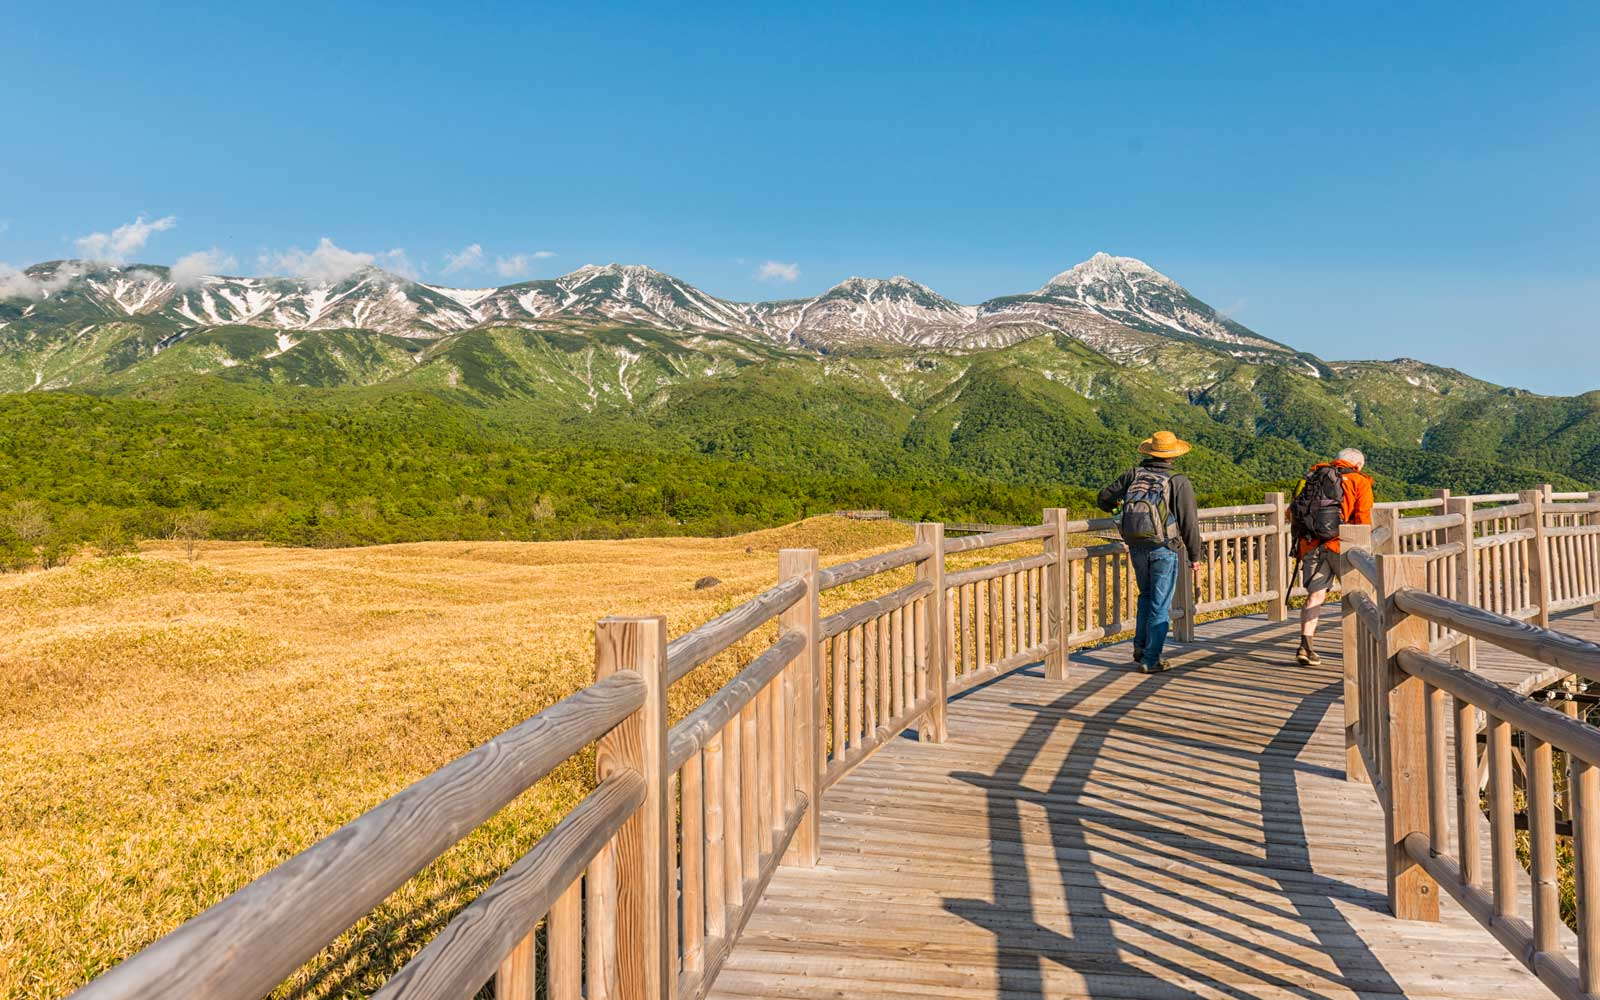 Shiretoko National Park. Scenic view on long boardwalk over wetland and two men walking, Shiretoko Five lakes.